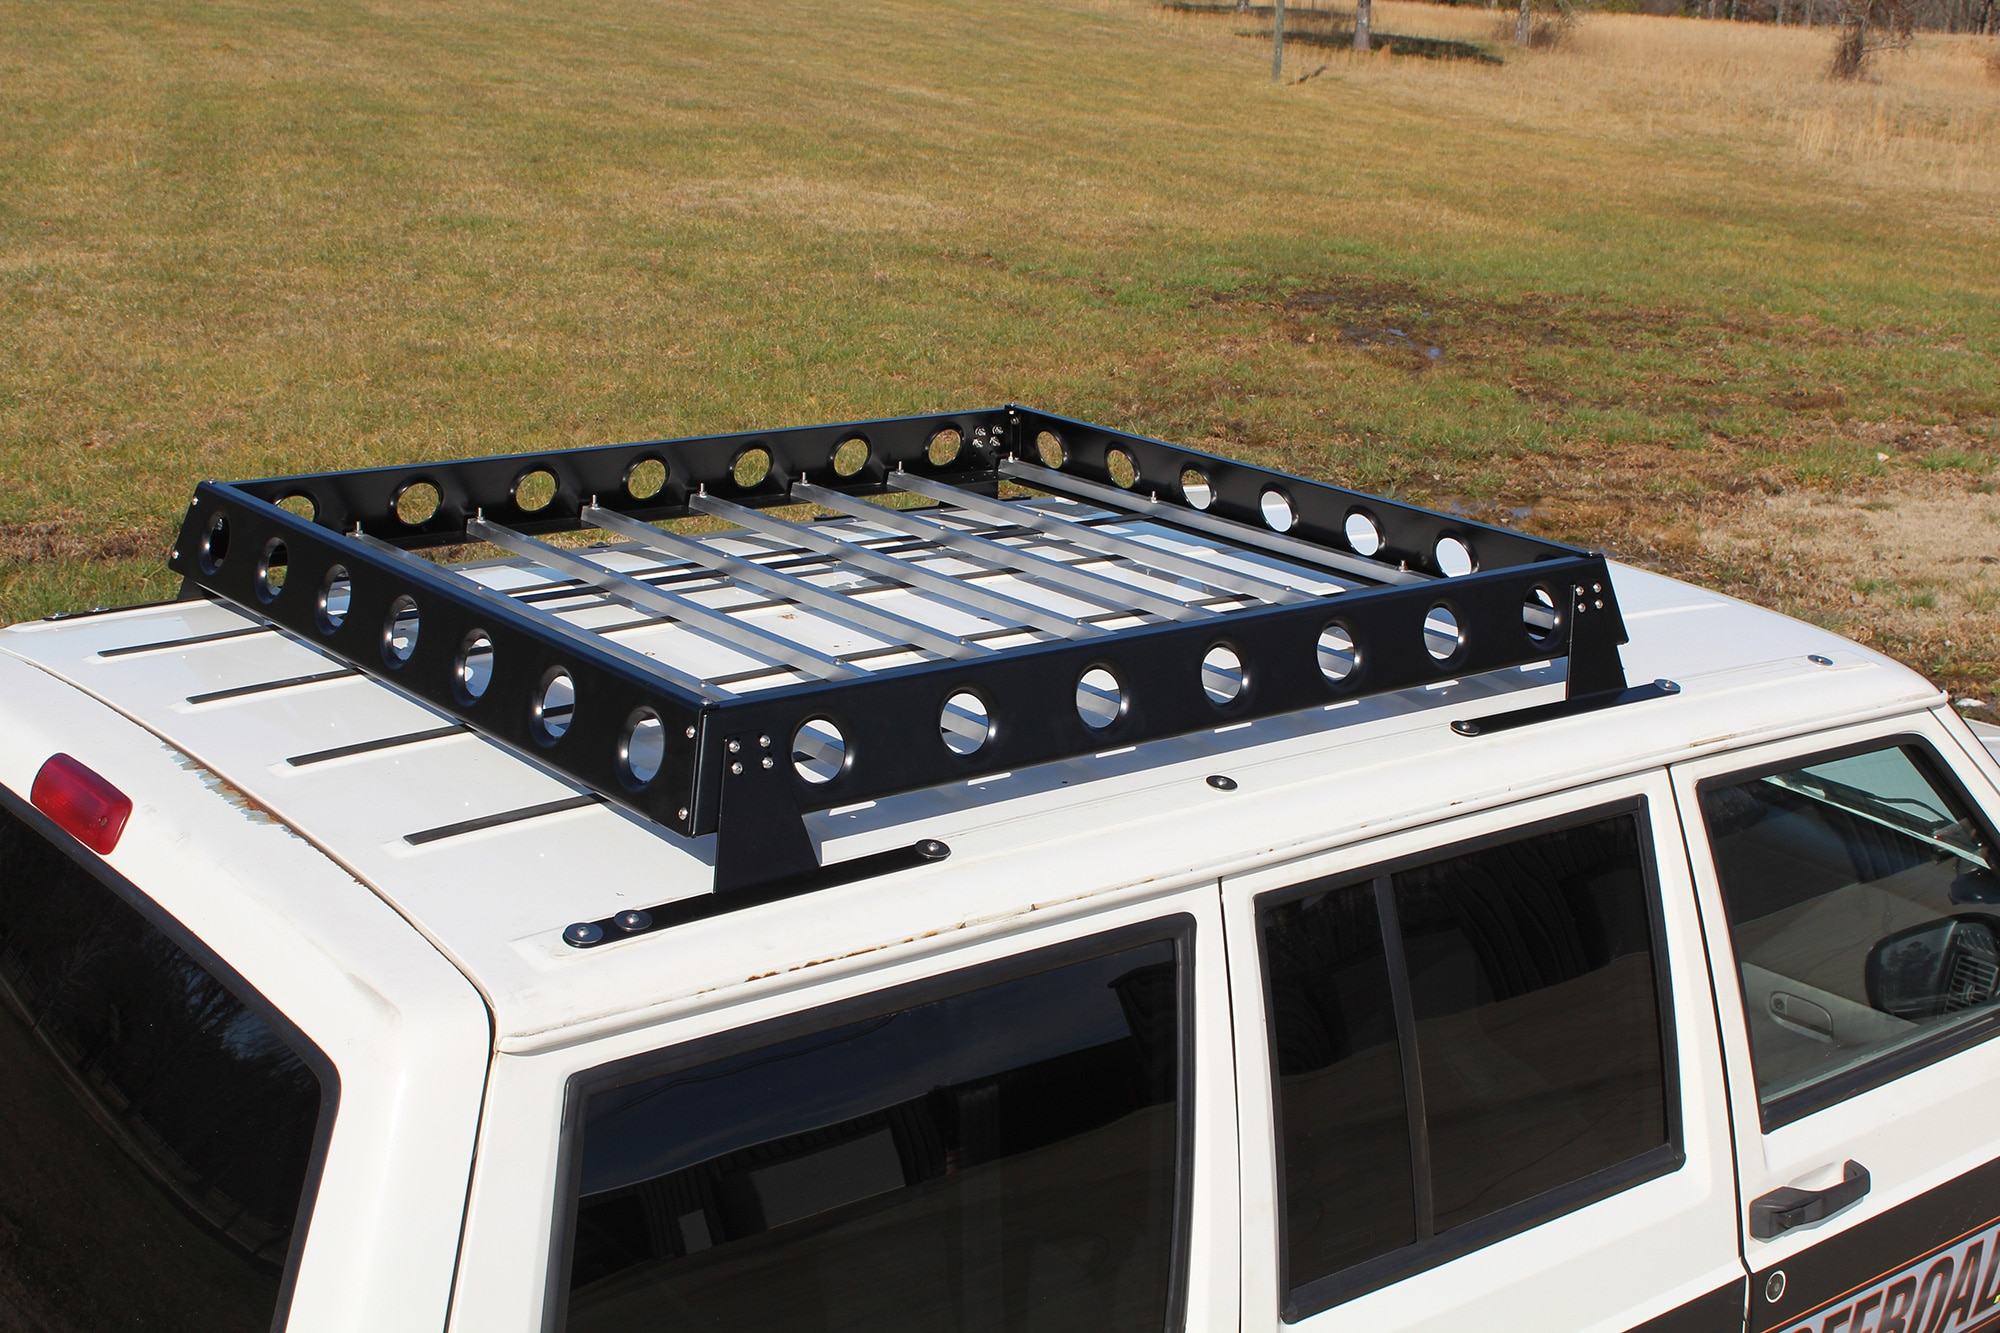 007 new products rustys off road roof rack jeep xj zj grand cherokee